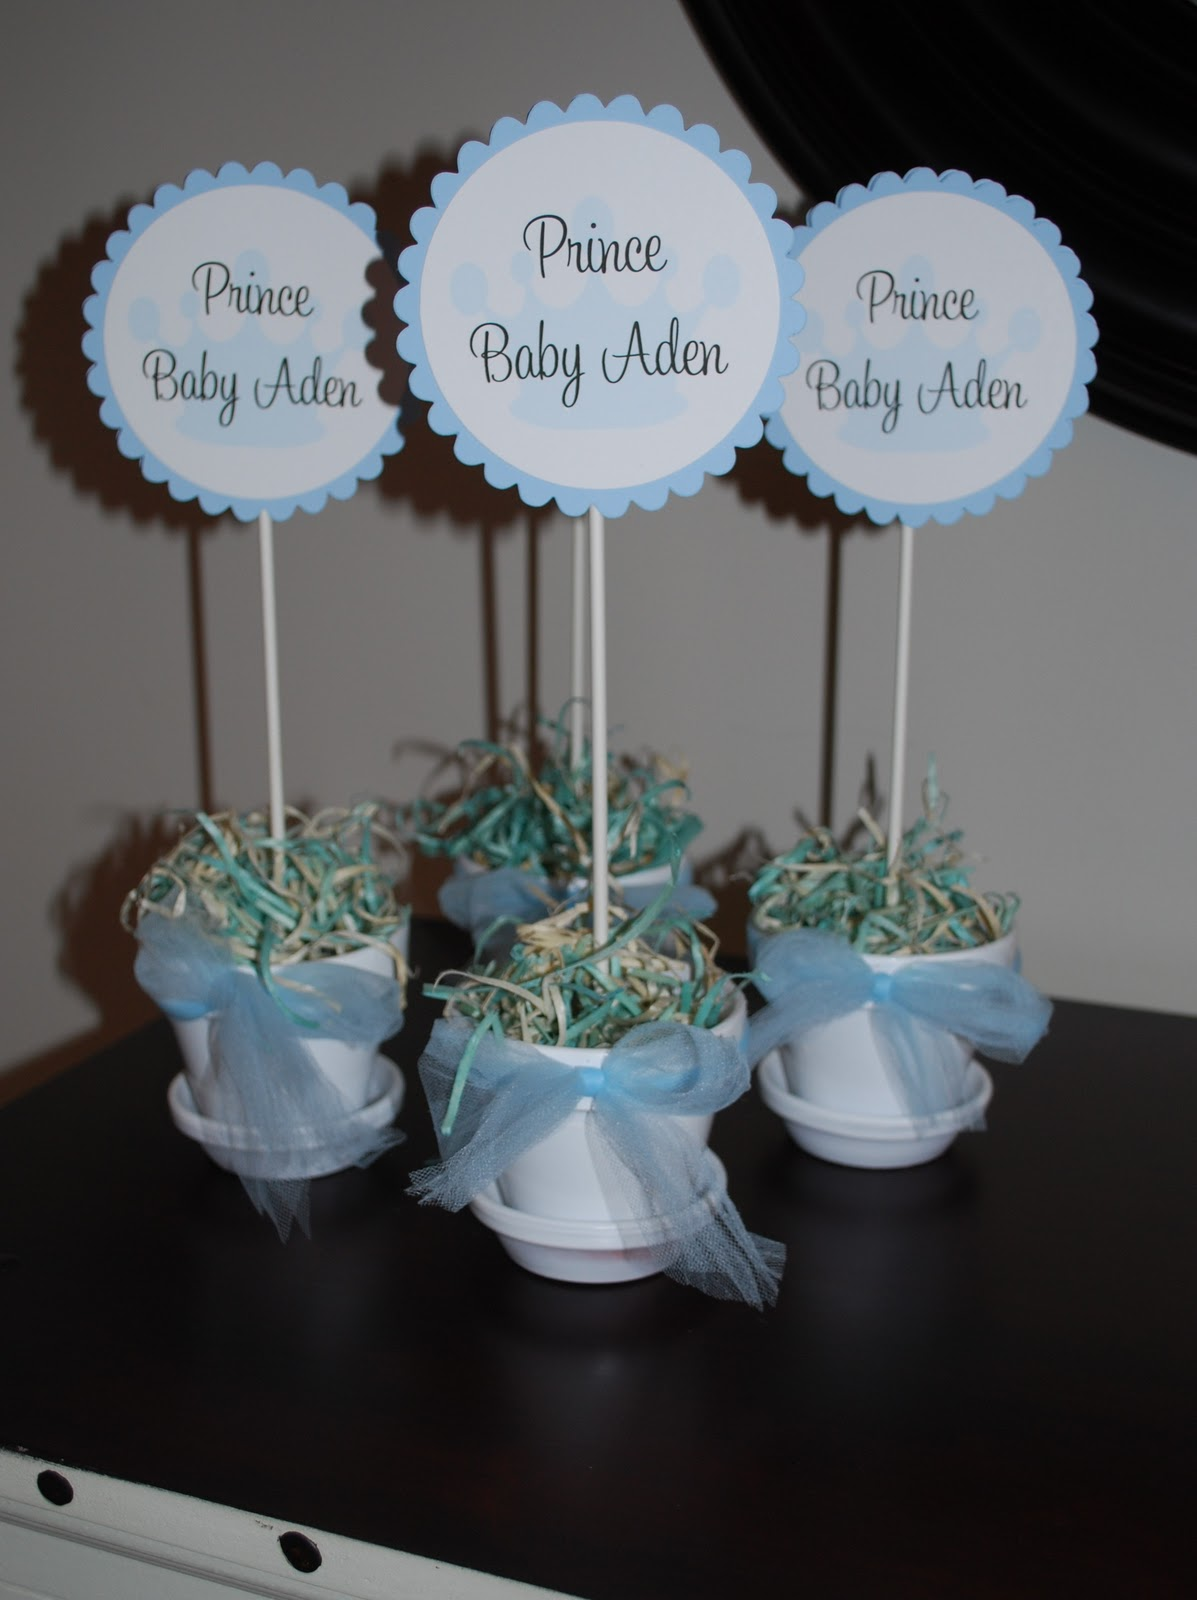 Baby shower ideas on pinterest baby showers baby for Baby shower decoration centerpieces